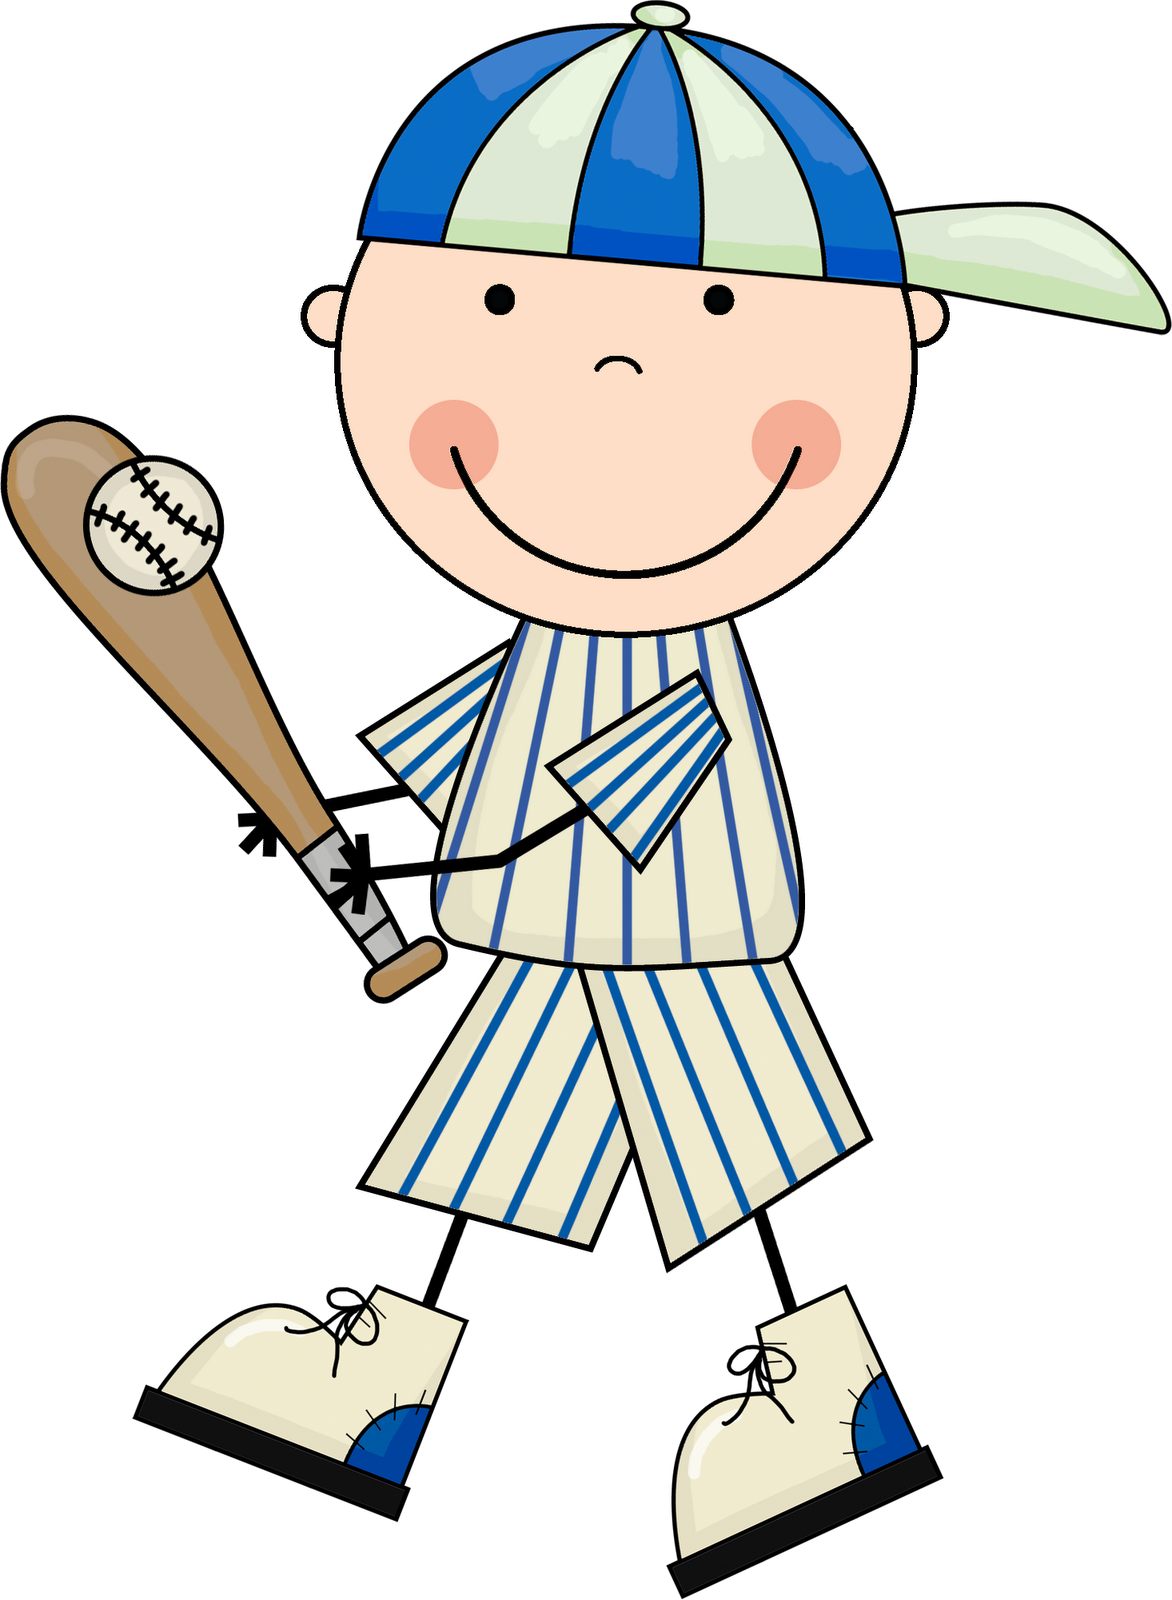 Baseball kids group borders. Voting clipart kid